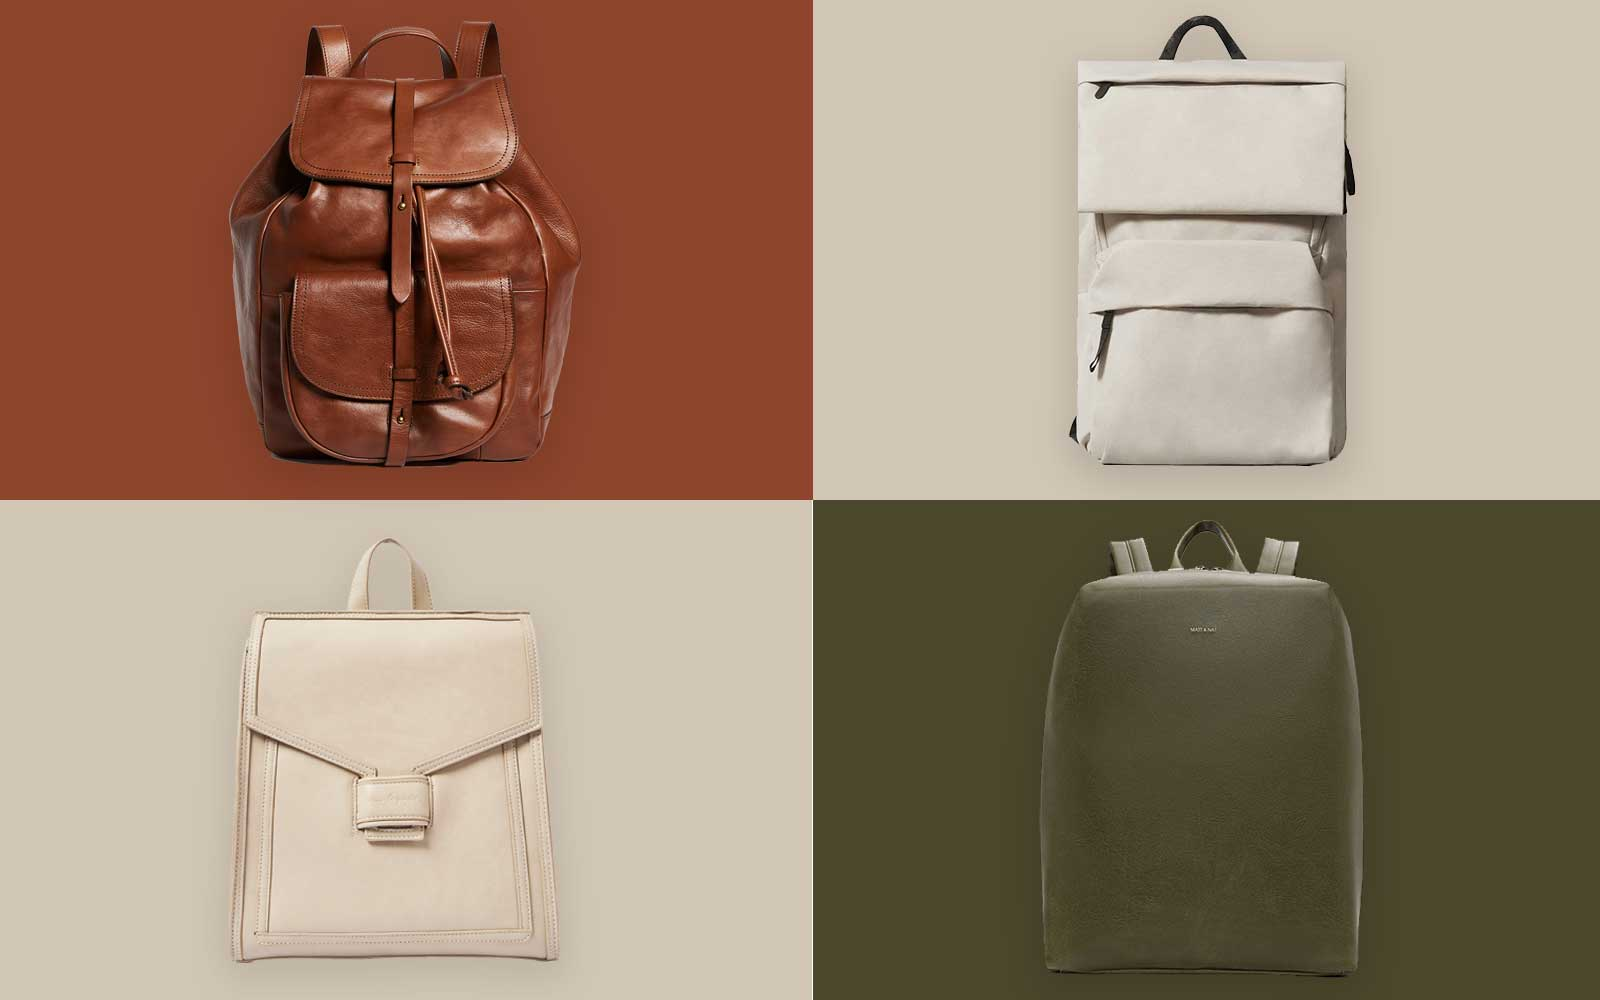 The Most Stylish Travel Backpacks For Women   Travel + Leisure